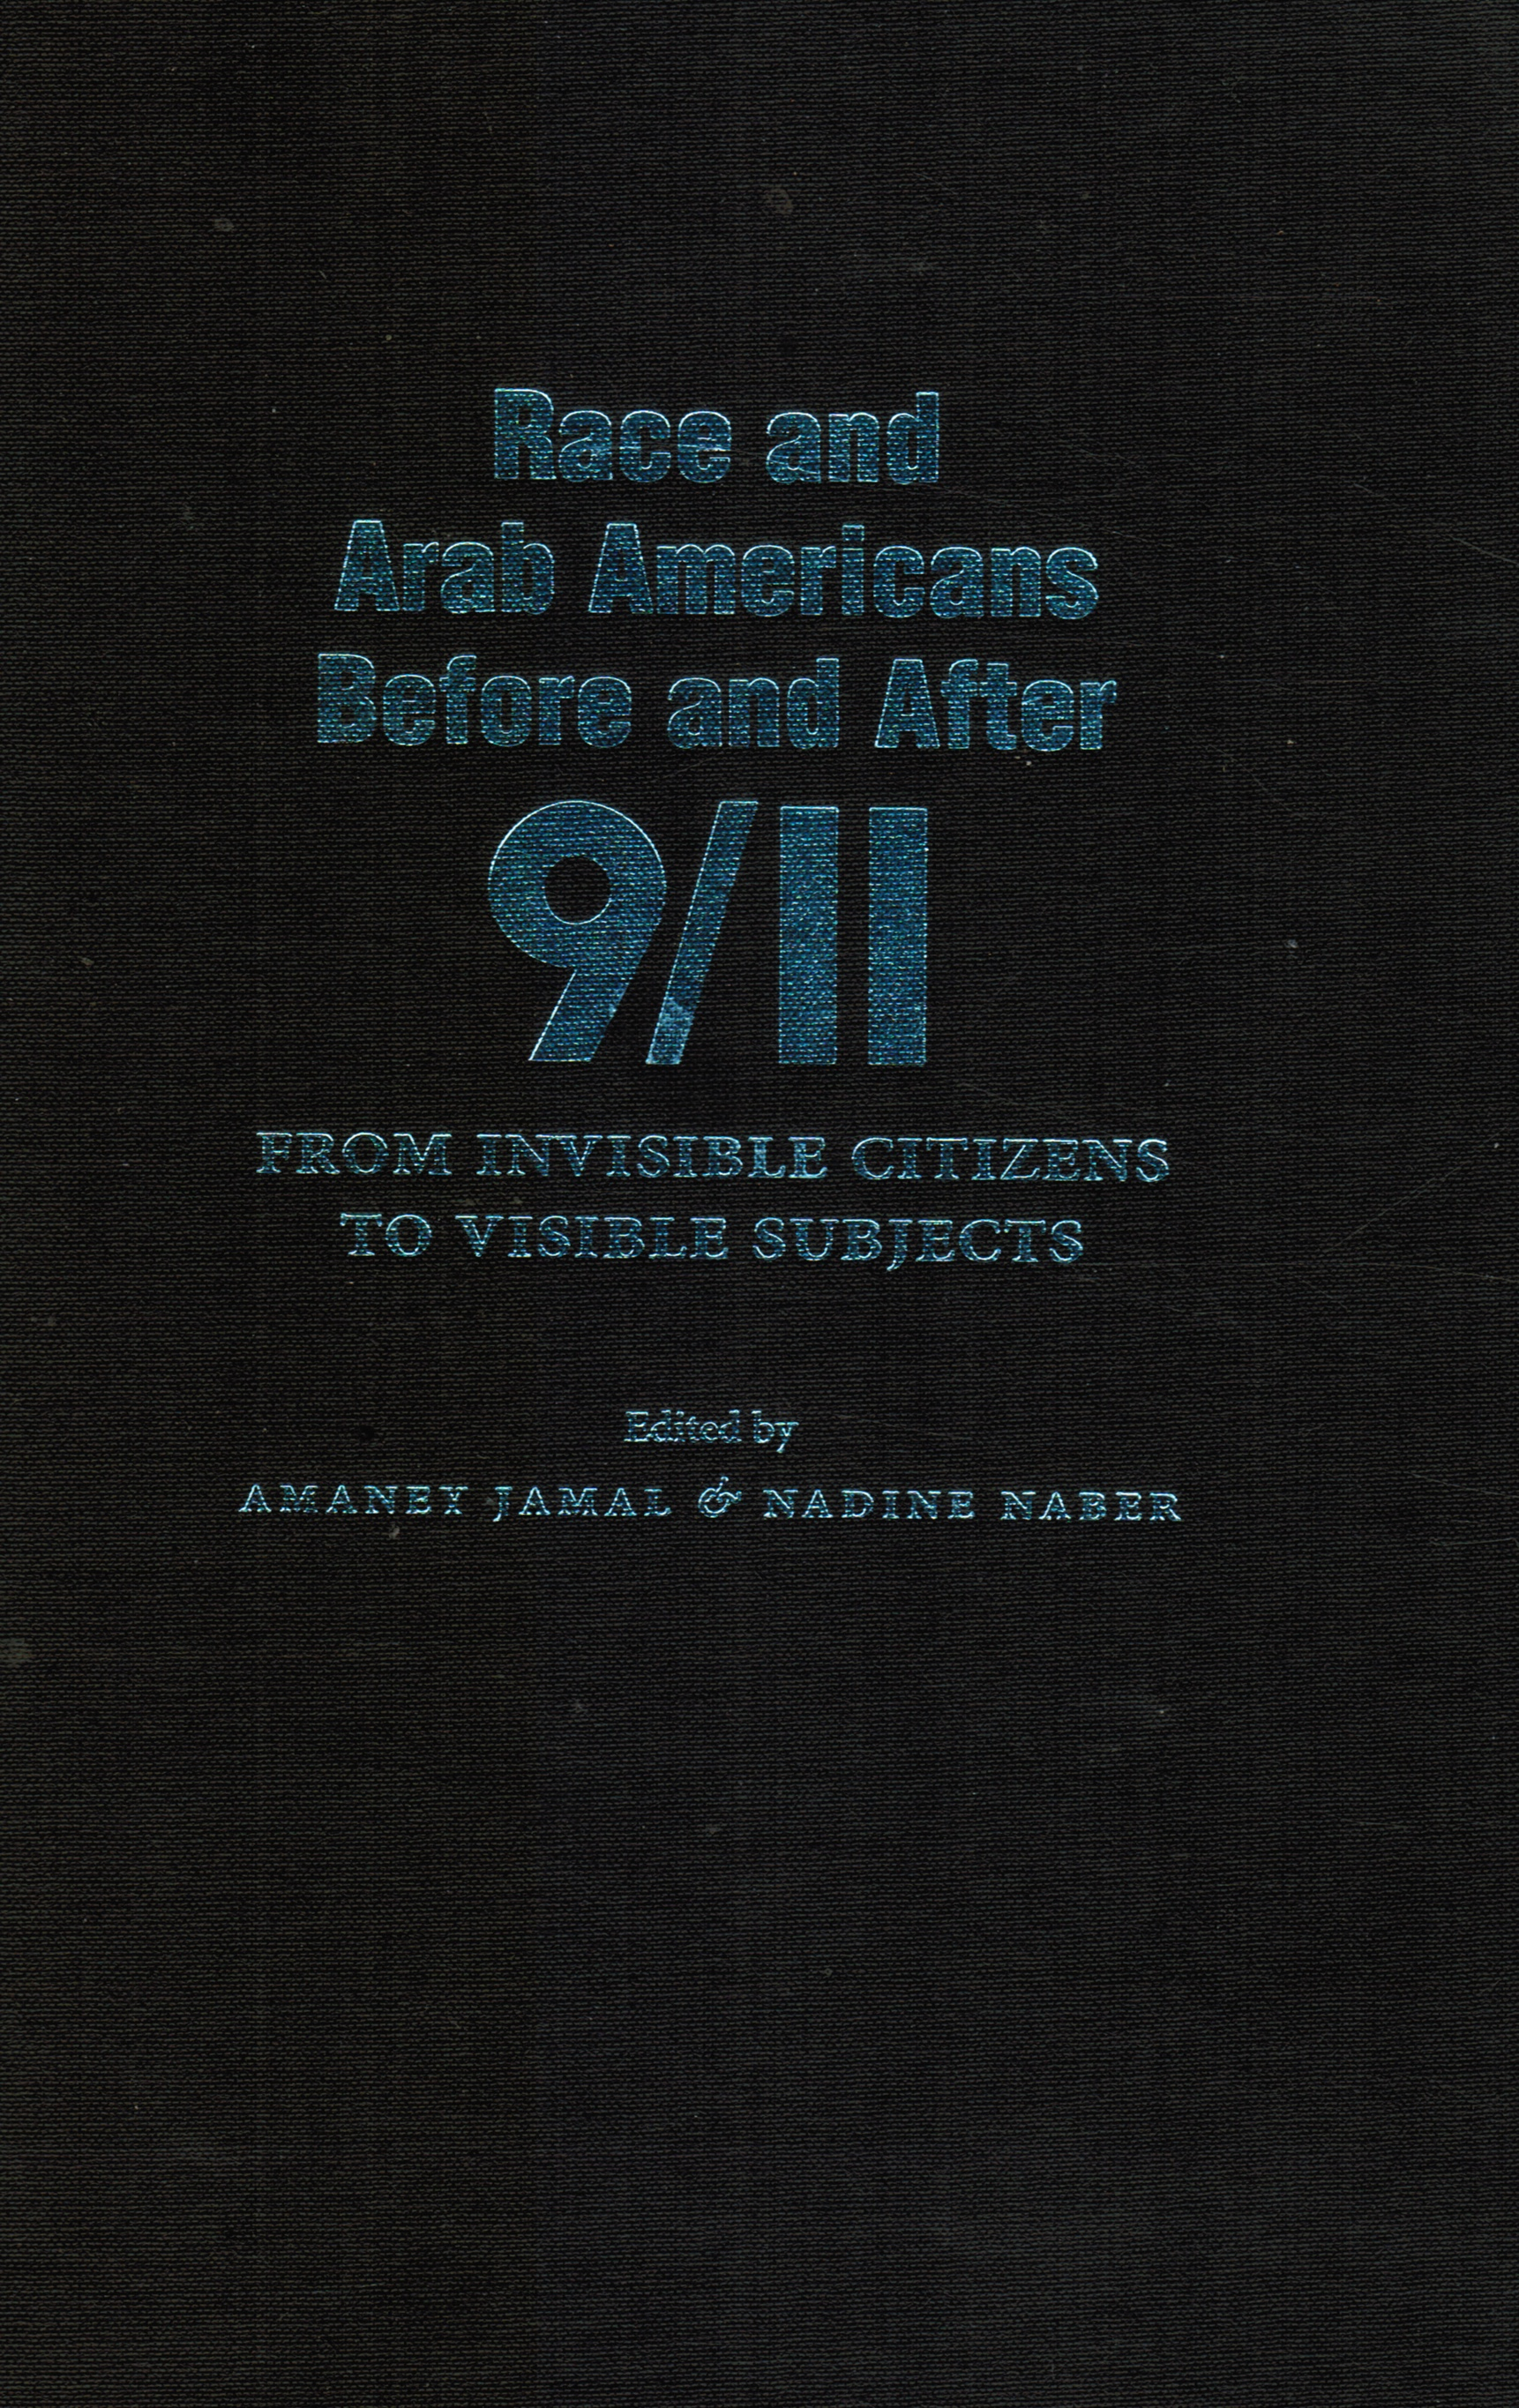 Image for Race and Arab Americans before and after 9/11: from Invisible Citizens to Visible Subjects